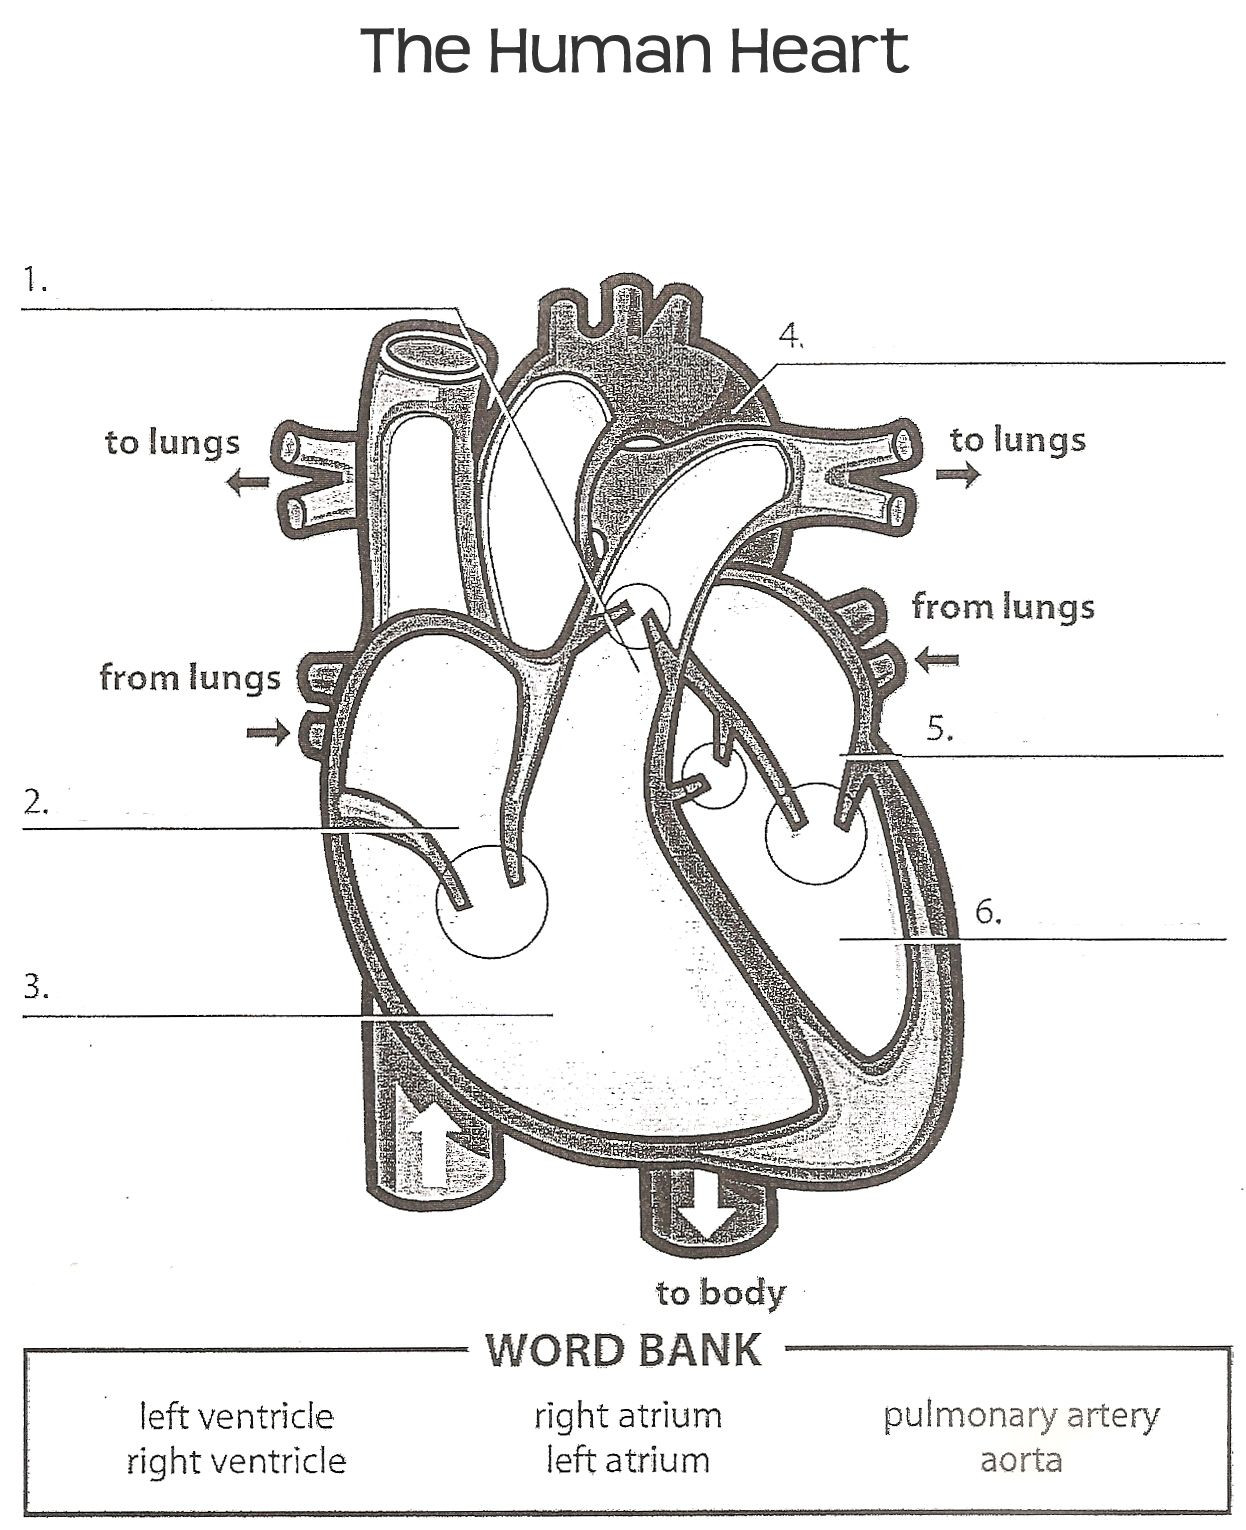 Printable Heart Diagram Diagram Heart with Labels Simple Simple Diagram Human